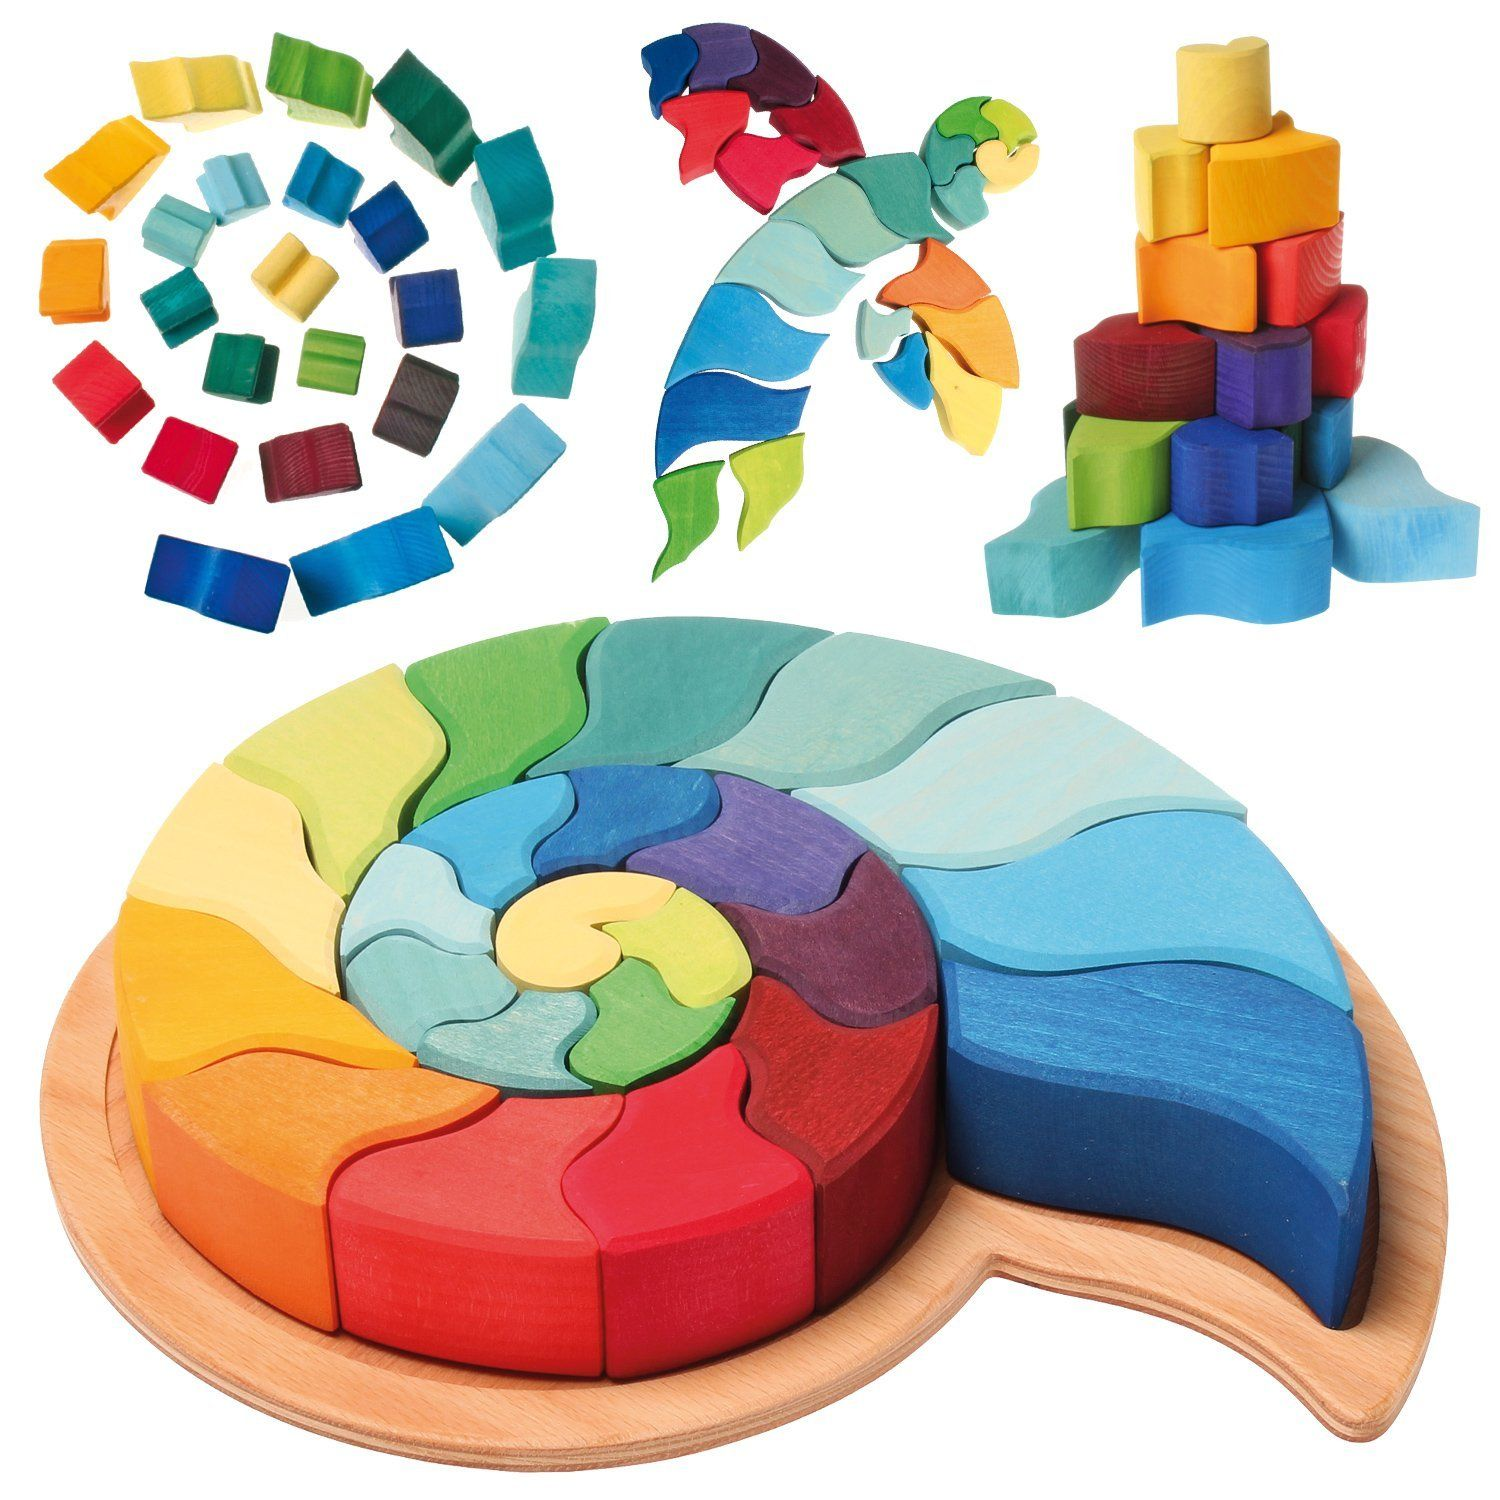 Ammonite Snail Shell Figurative Puzzle of Creative Wooden